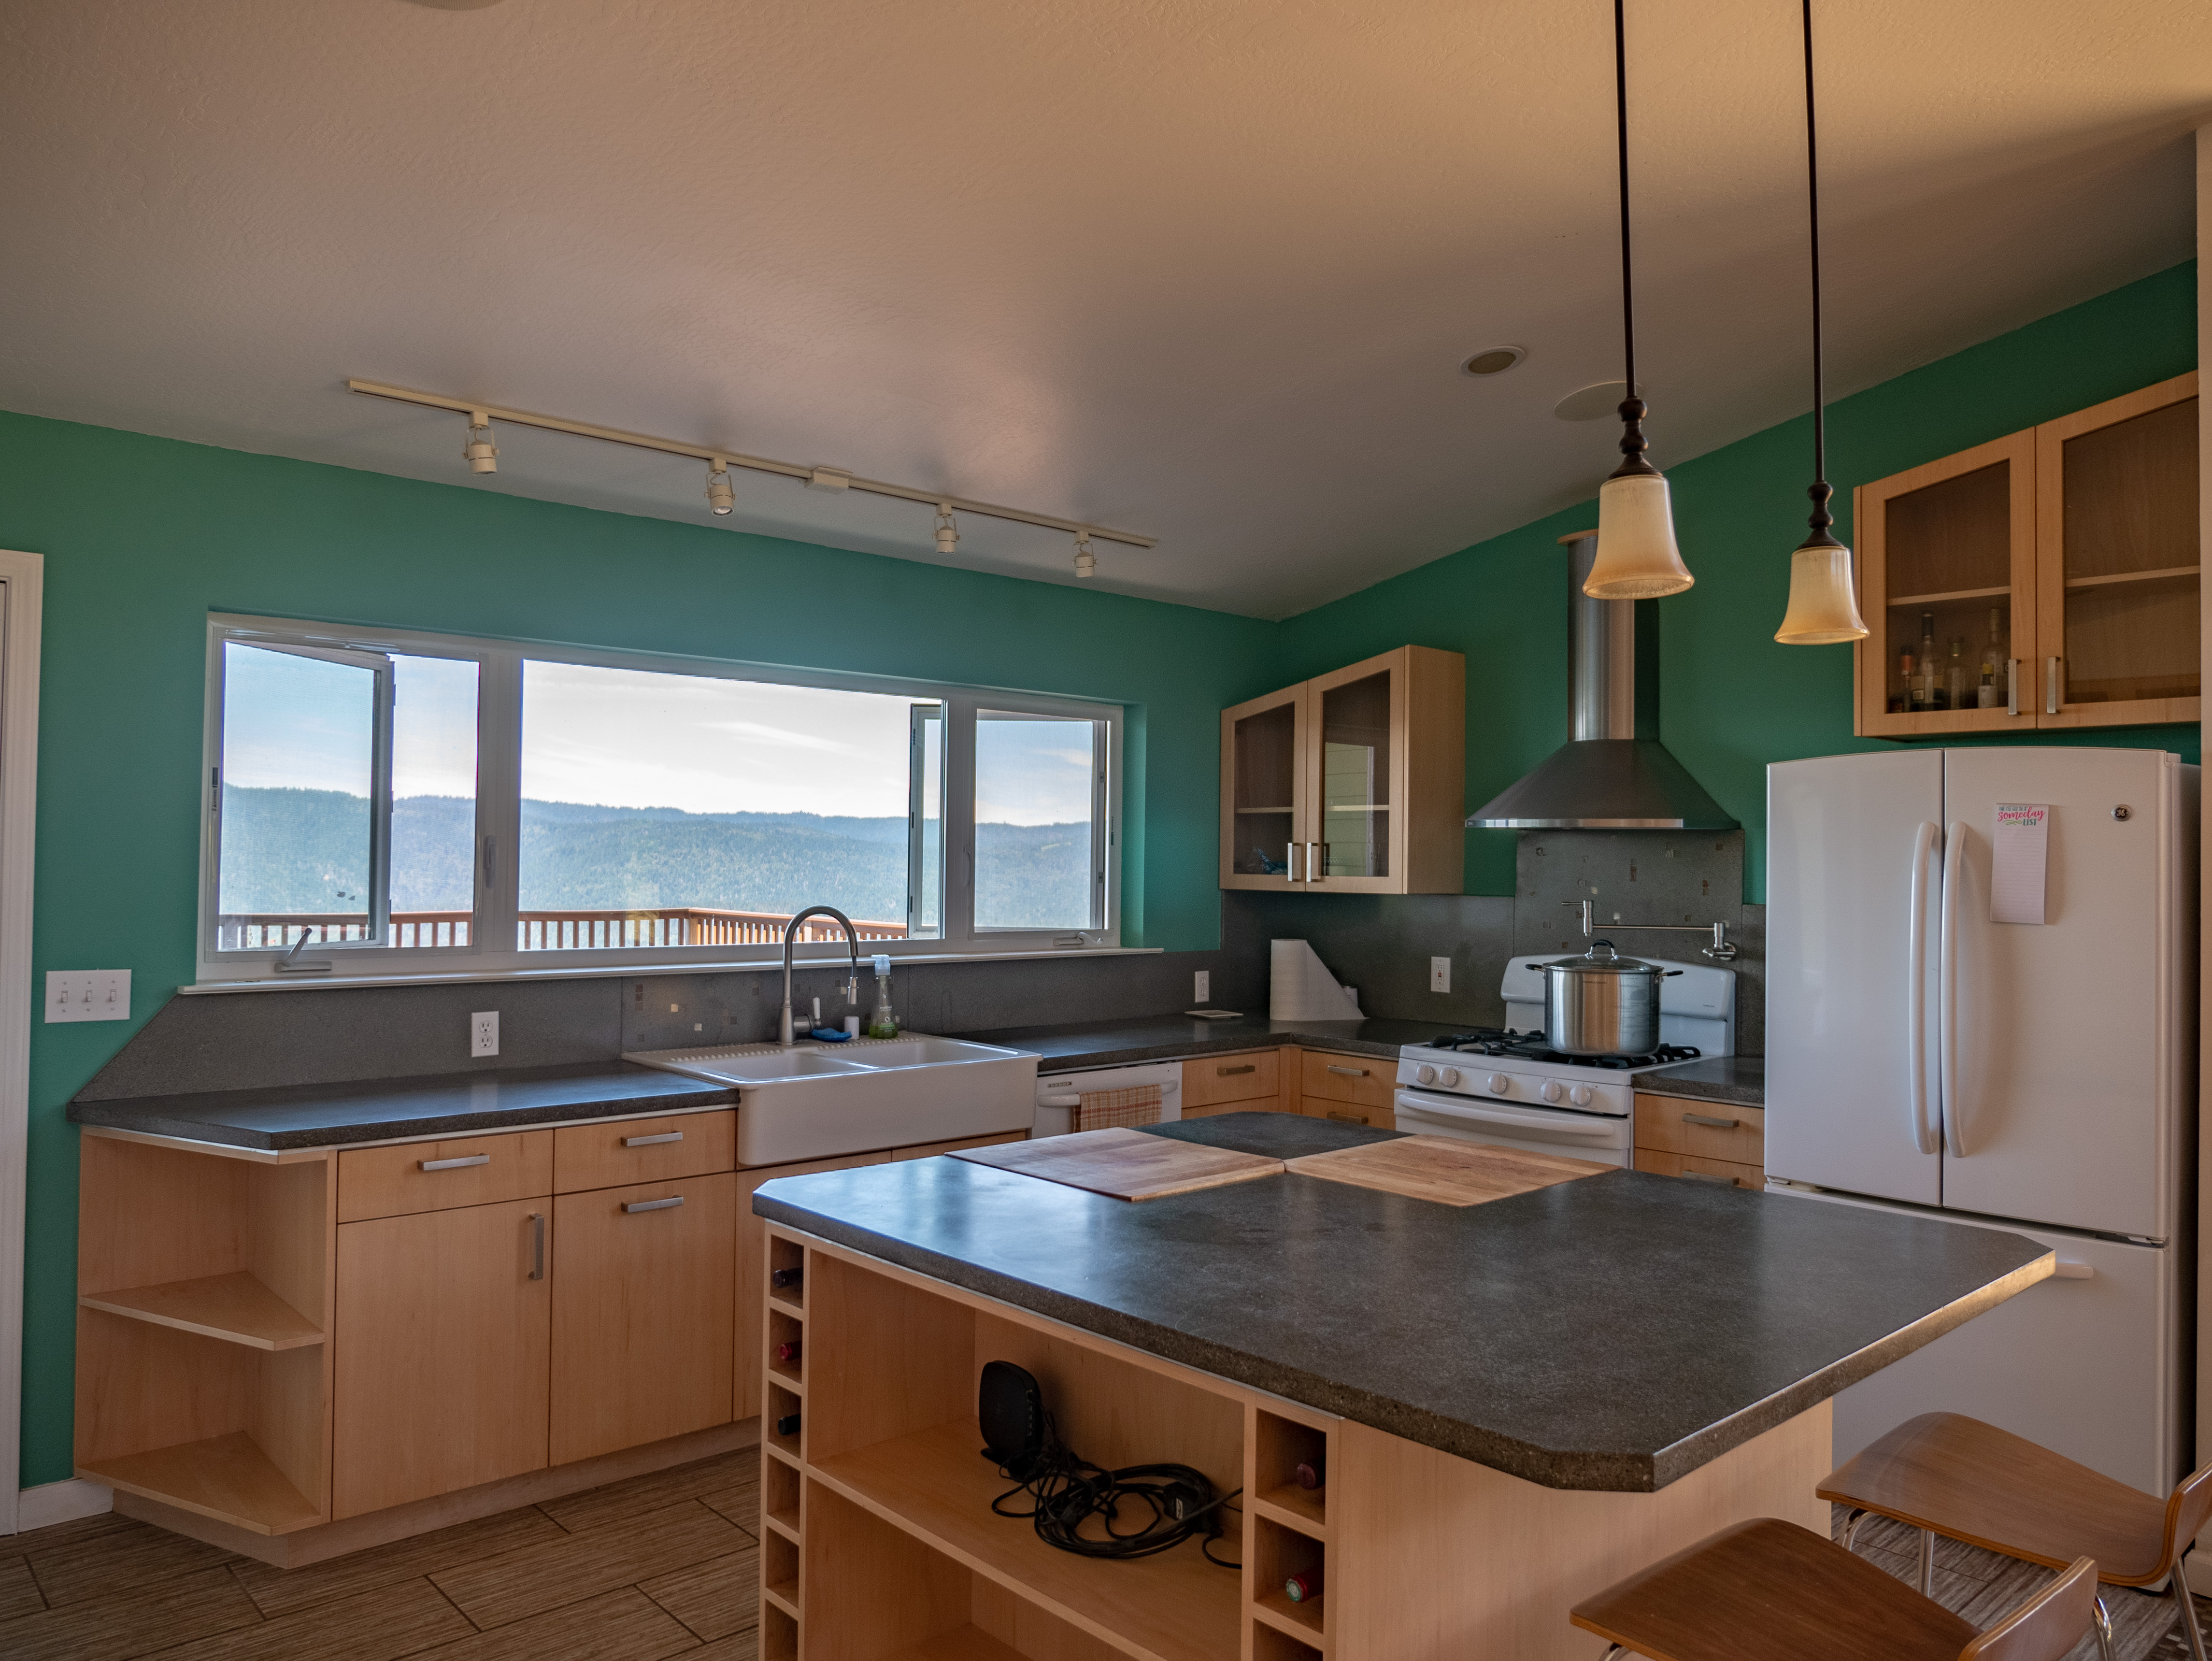 Best view ever from the Kitchen window.  Custom cabinets